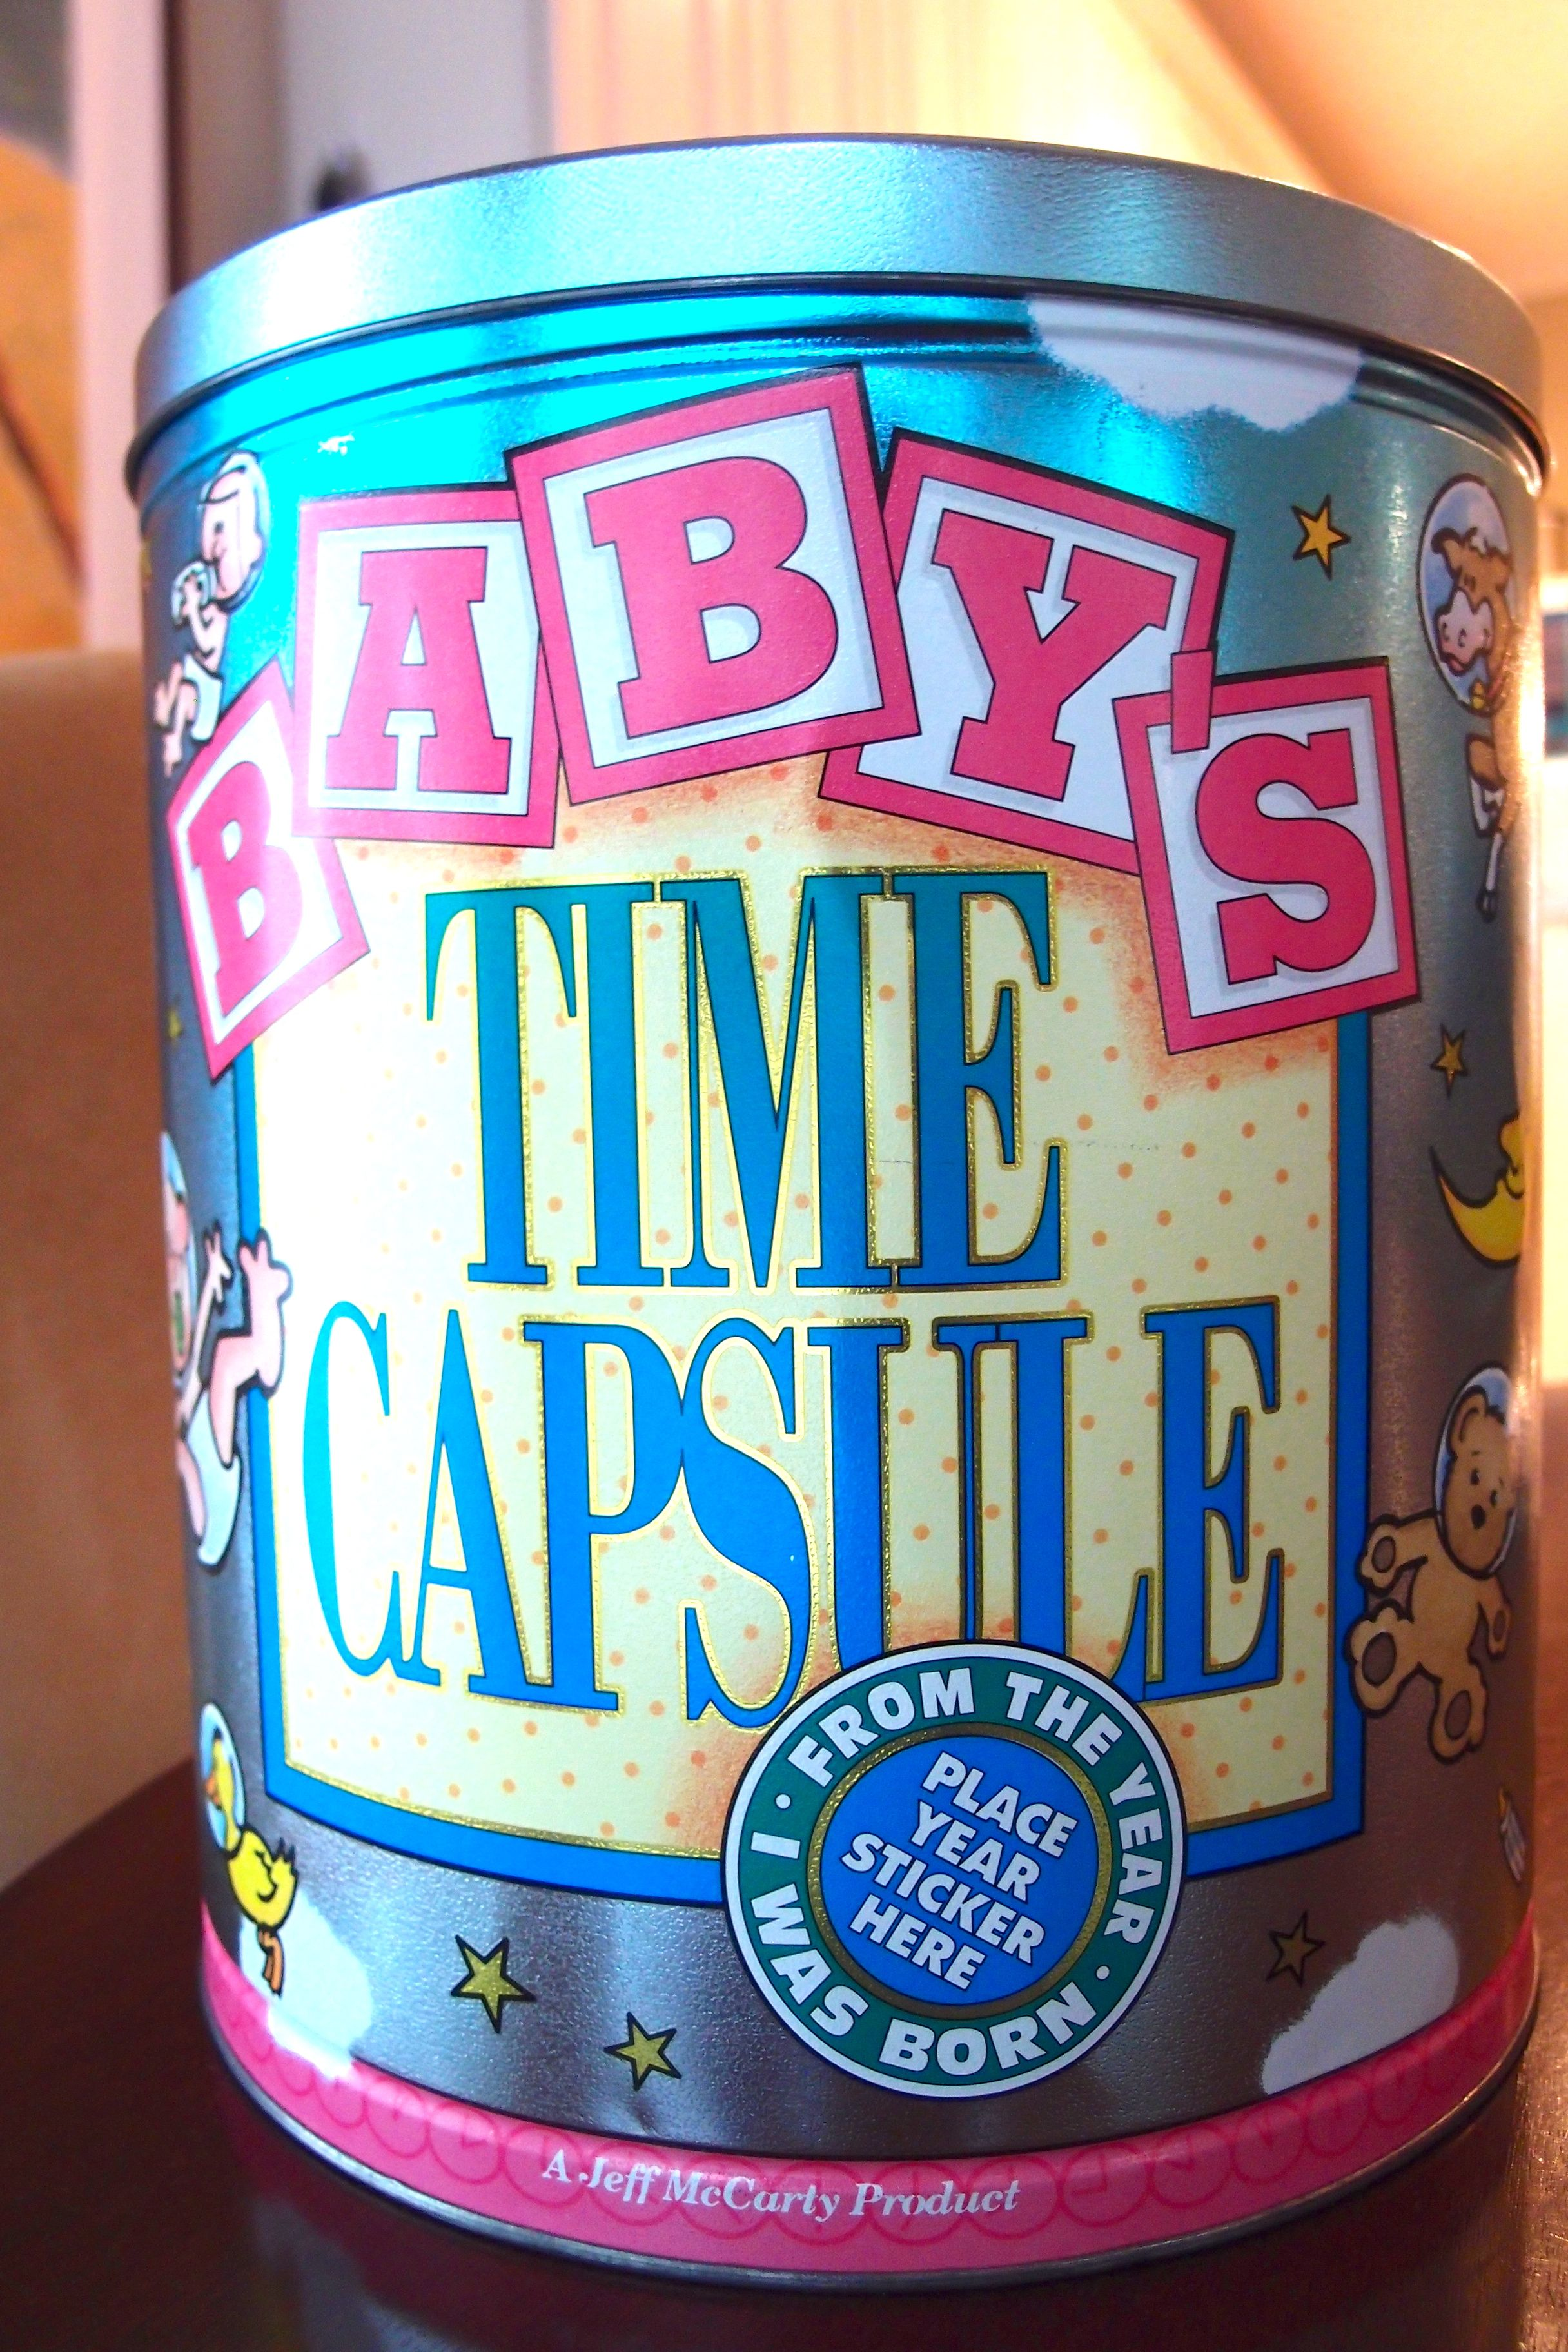 Baby Time Capsule On Pinterest: Baby Time Capsule On Pinterest